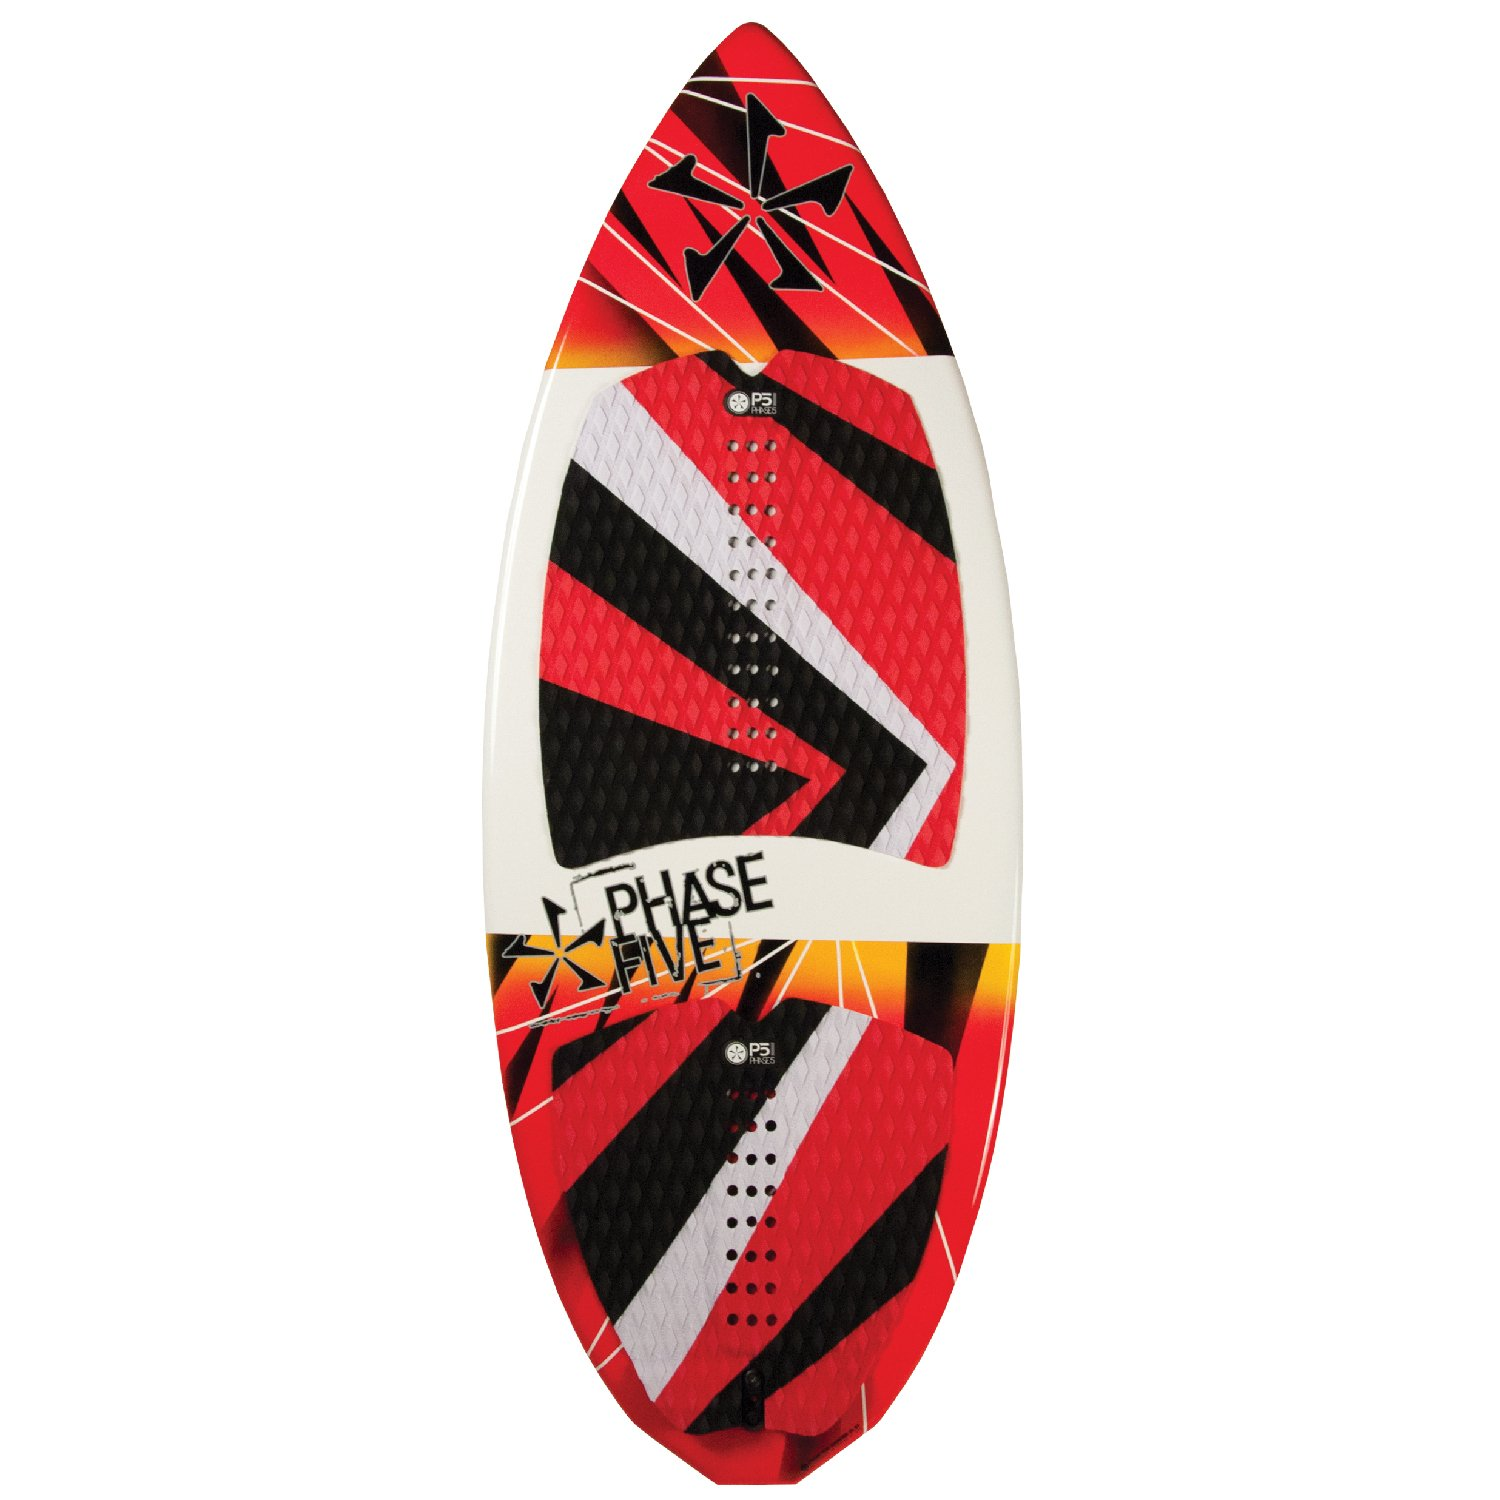 "Phase 5 Diamond CL (Assorted Colors) Wakesurfer-54"" 2017"